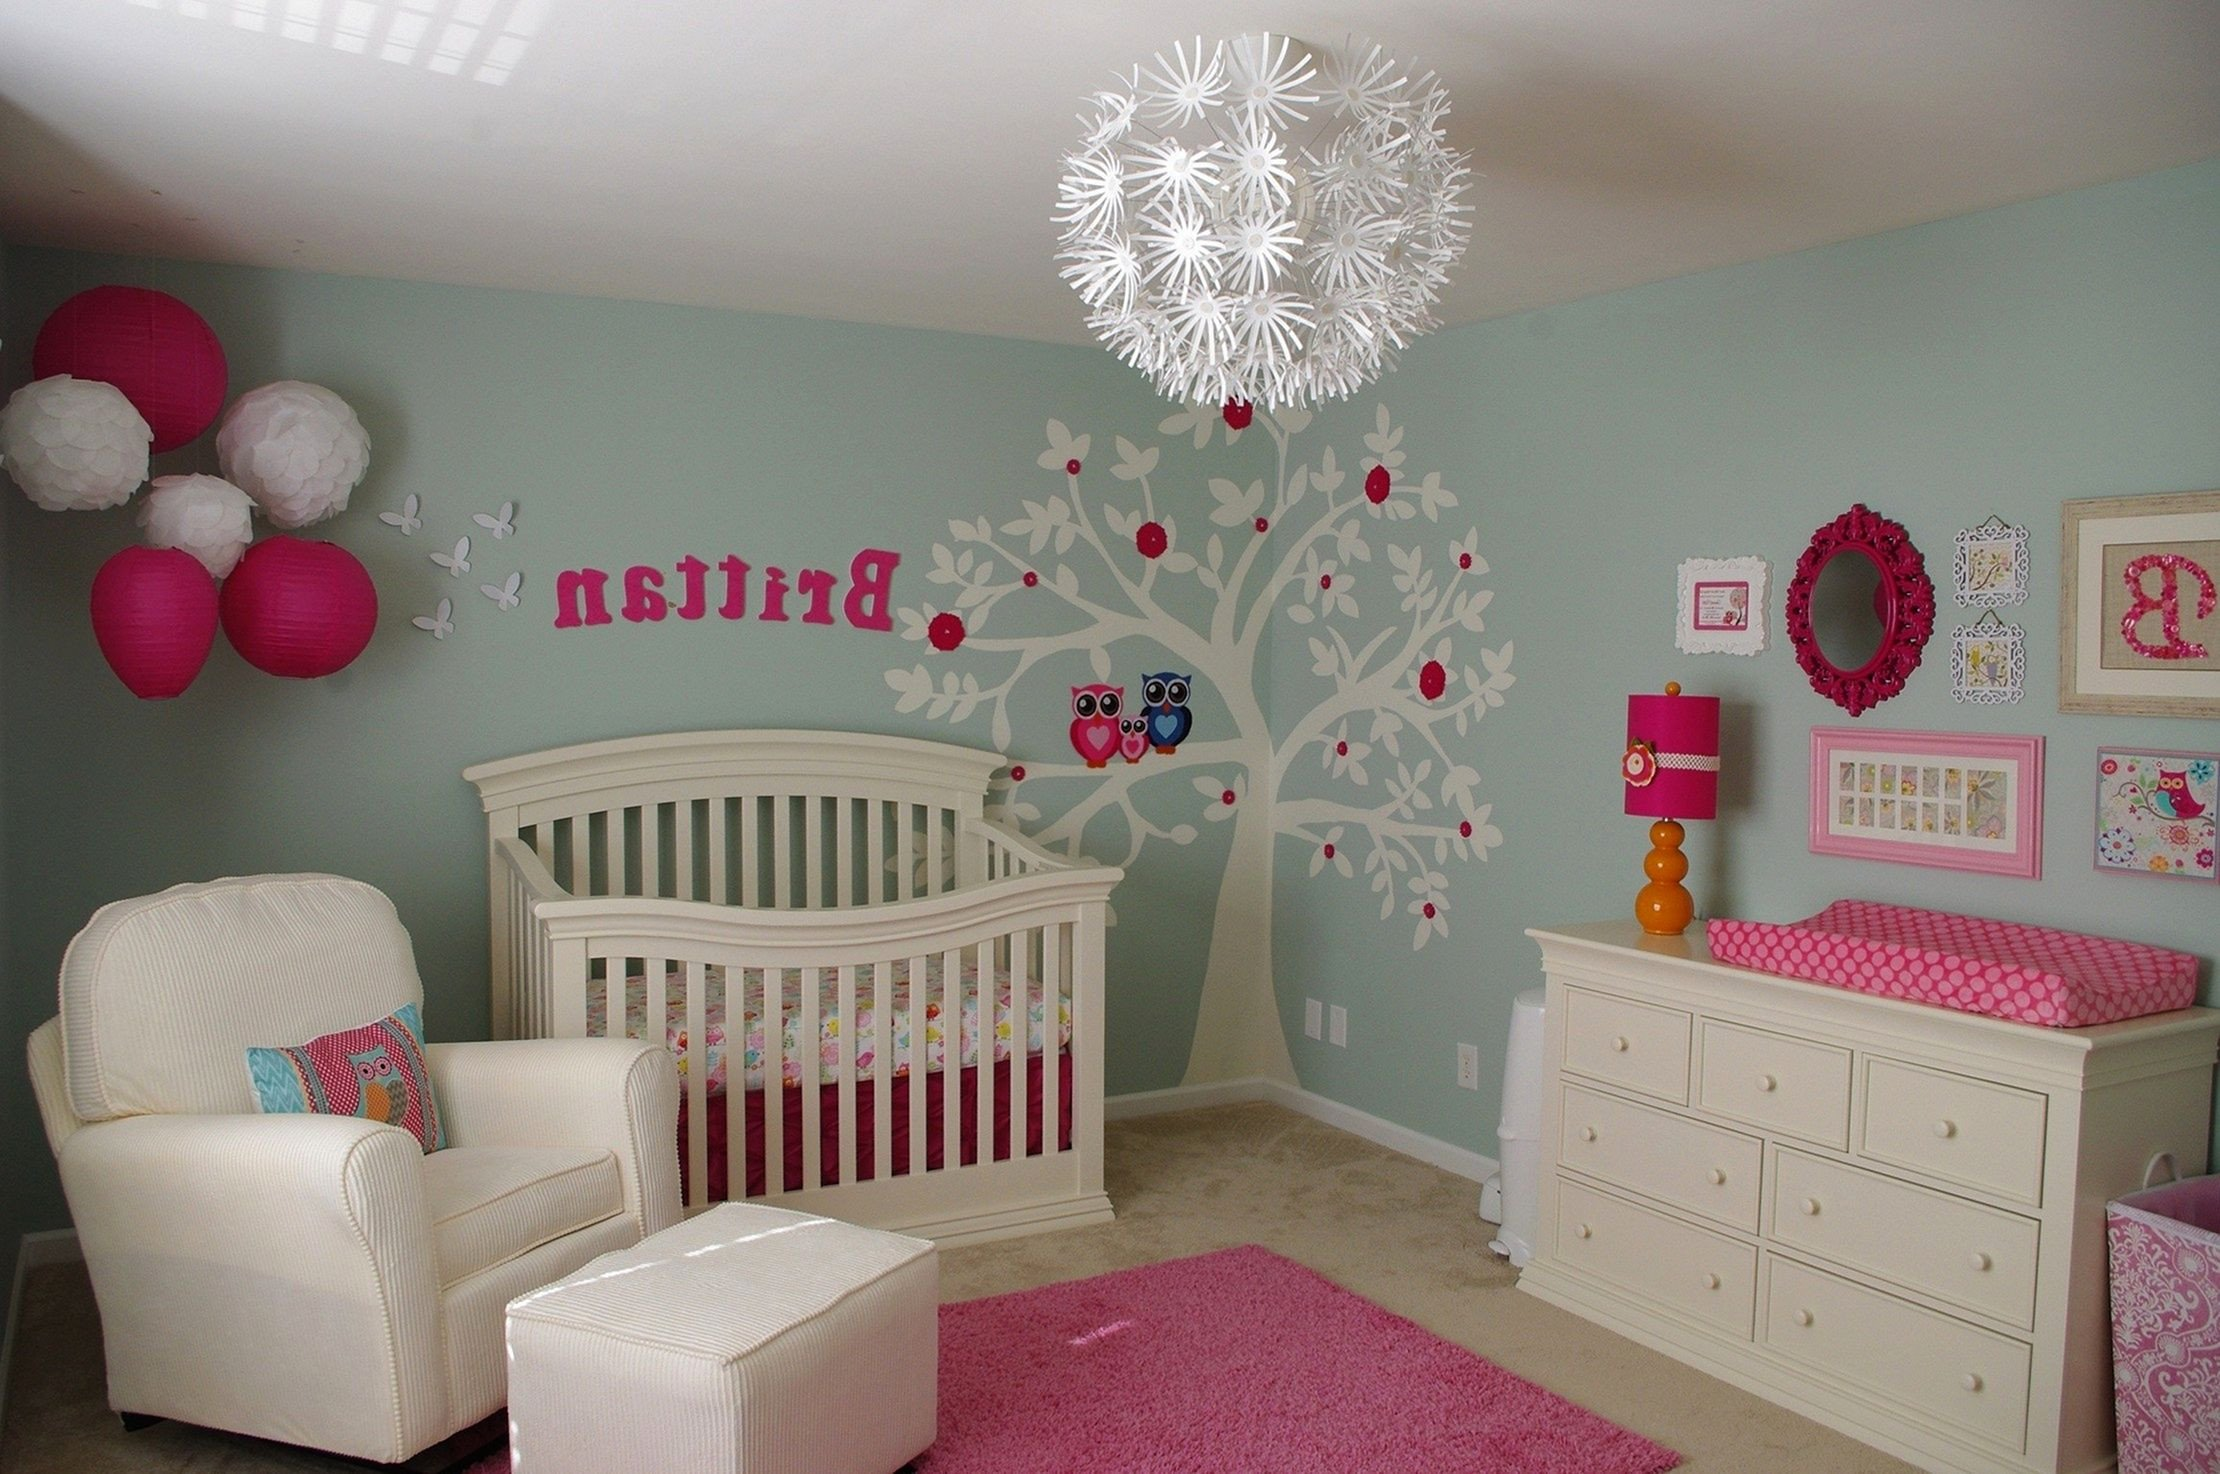 Room Decor for Baby Girl New Diy Baby Room Decor Ideas for Girls Diy Baby Room Decor Ideas for Girls Design Ideas and Photos